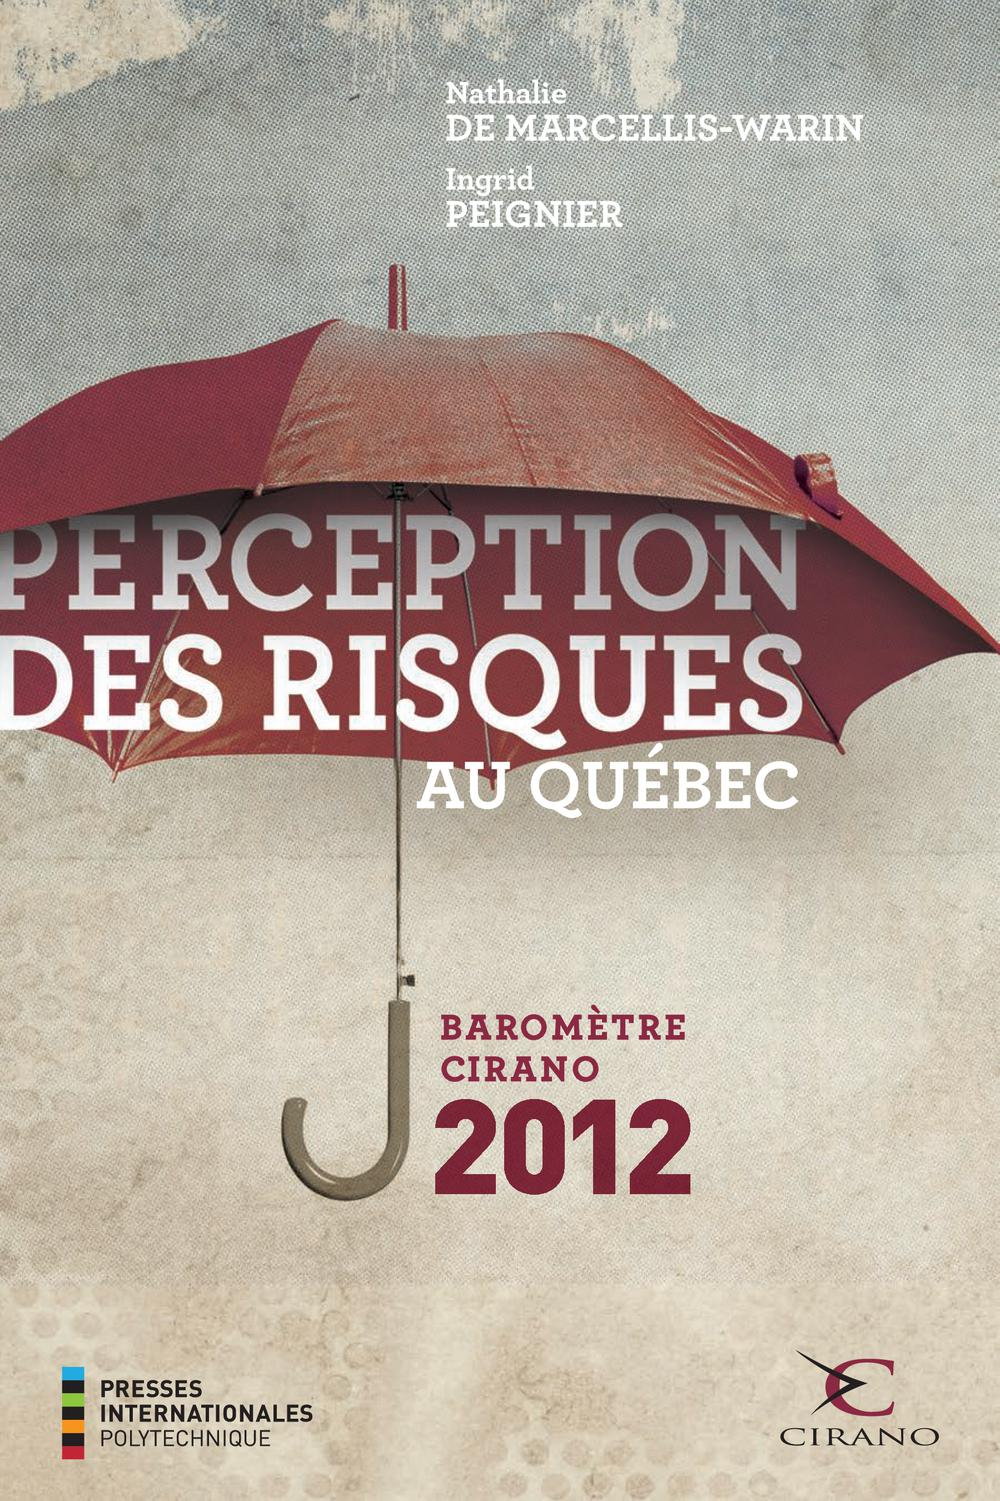 PERCEPTION DES RISQUES AU QUEBEC - BAROMETRE CIRANO 2012